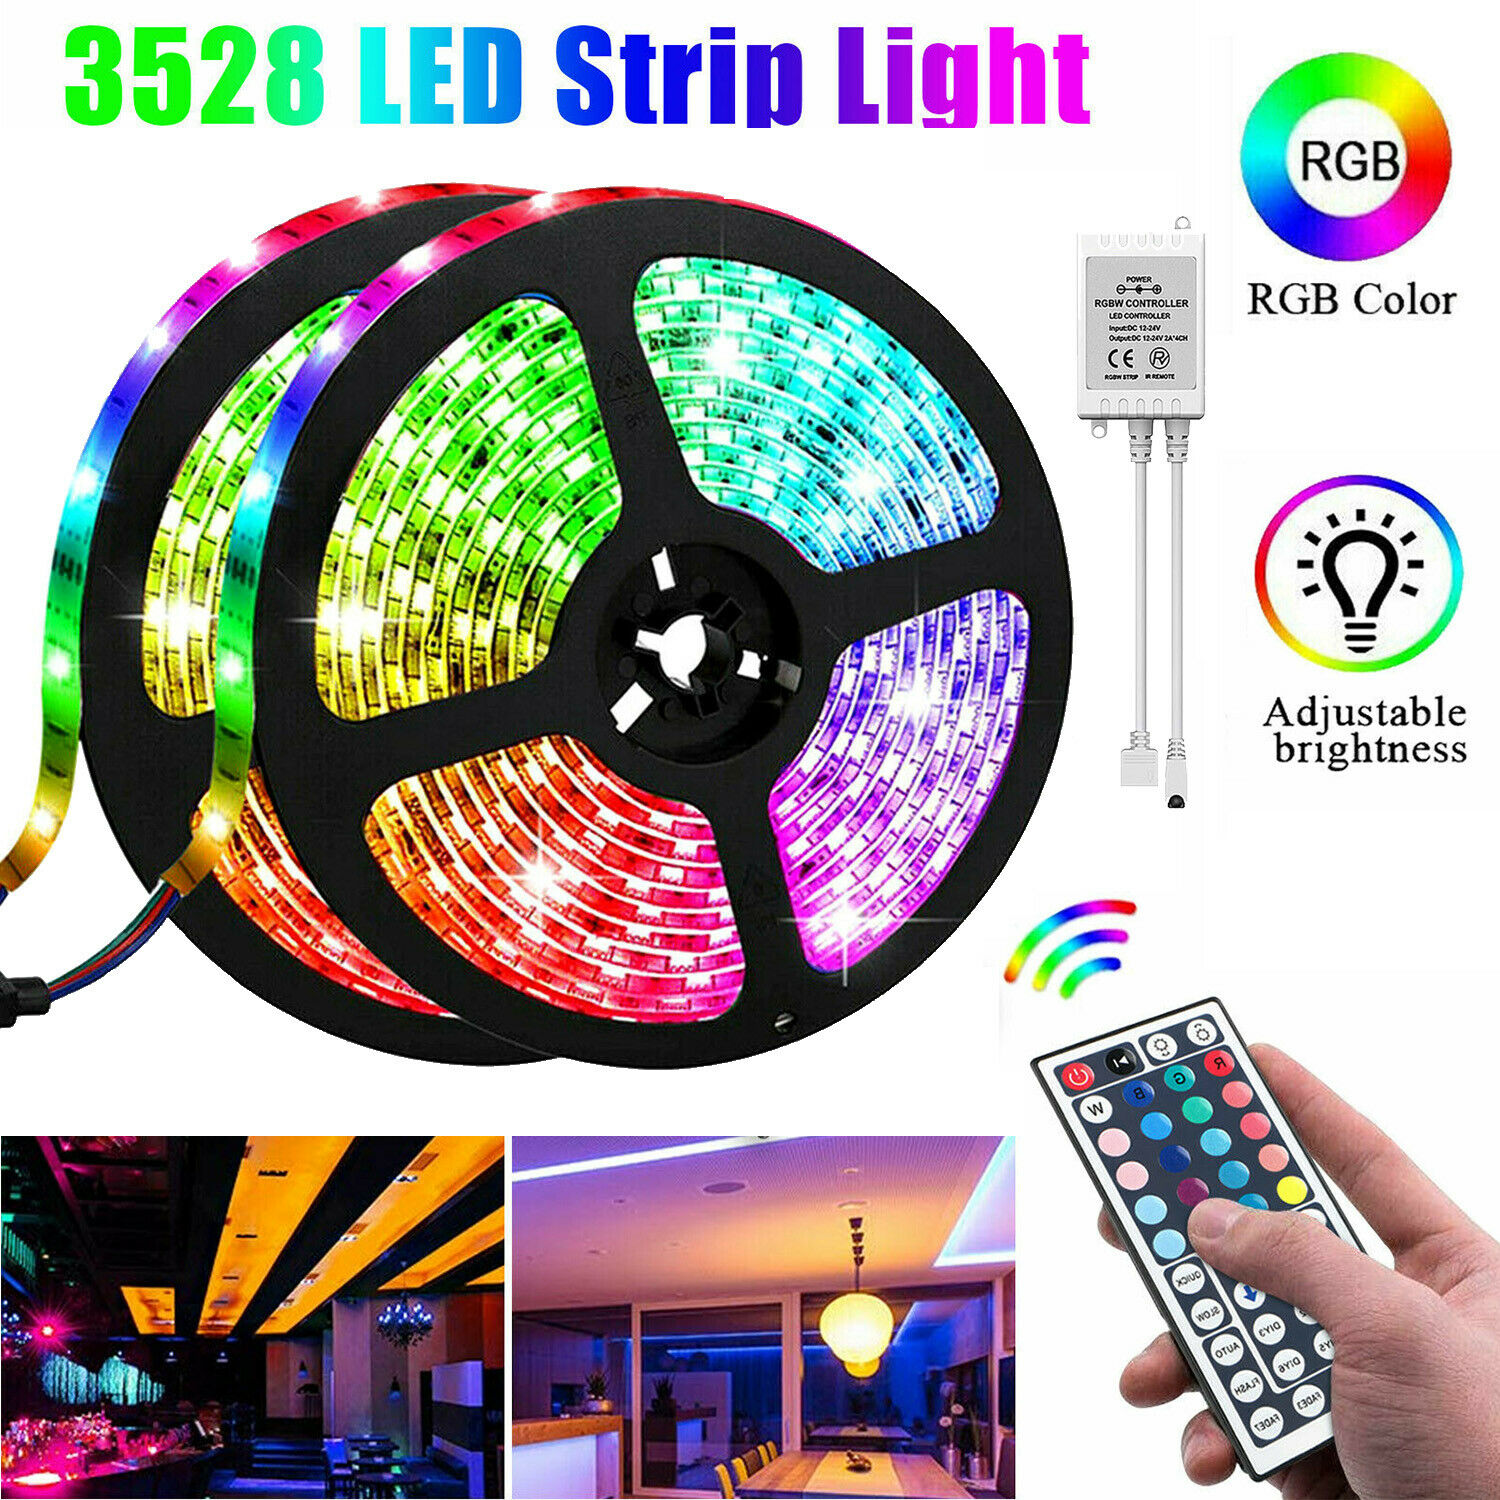 smd-3528-dc12v-led-strip-light-rgb-flexible-tape-ribbon-lamp-with-remote-control